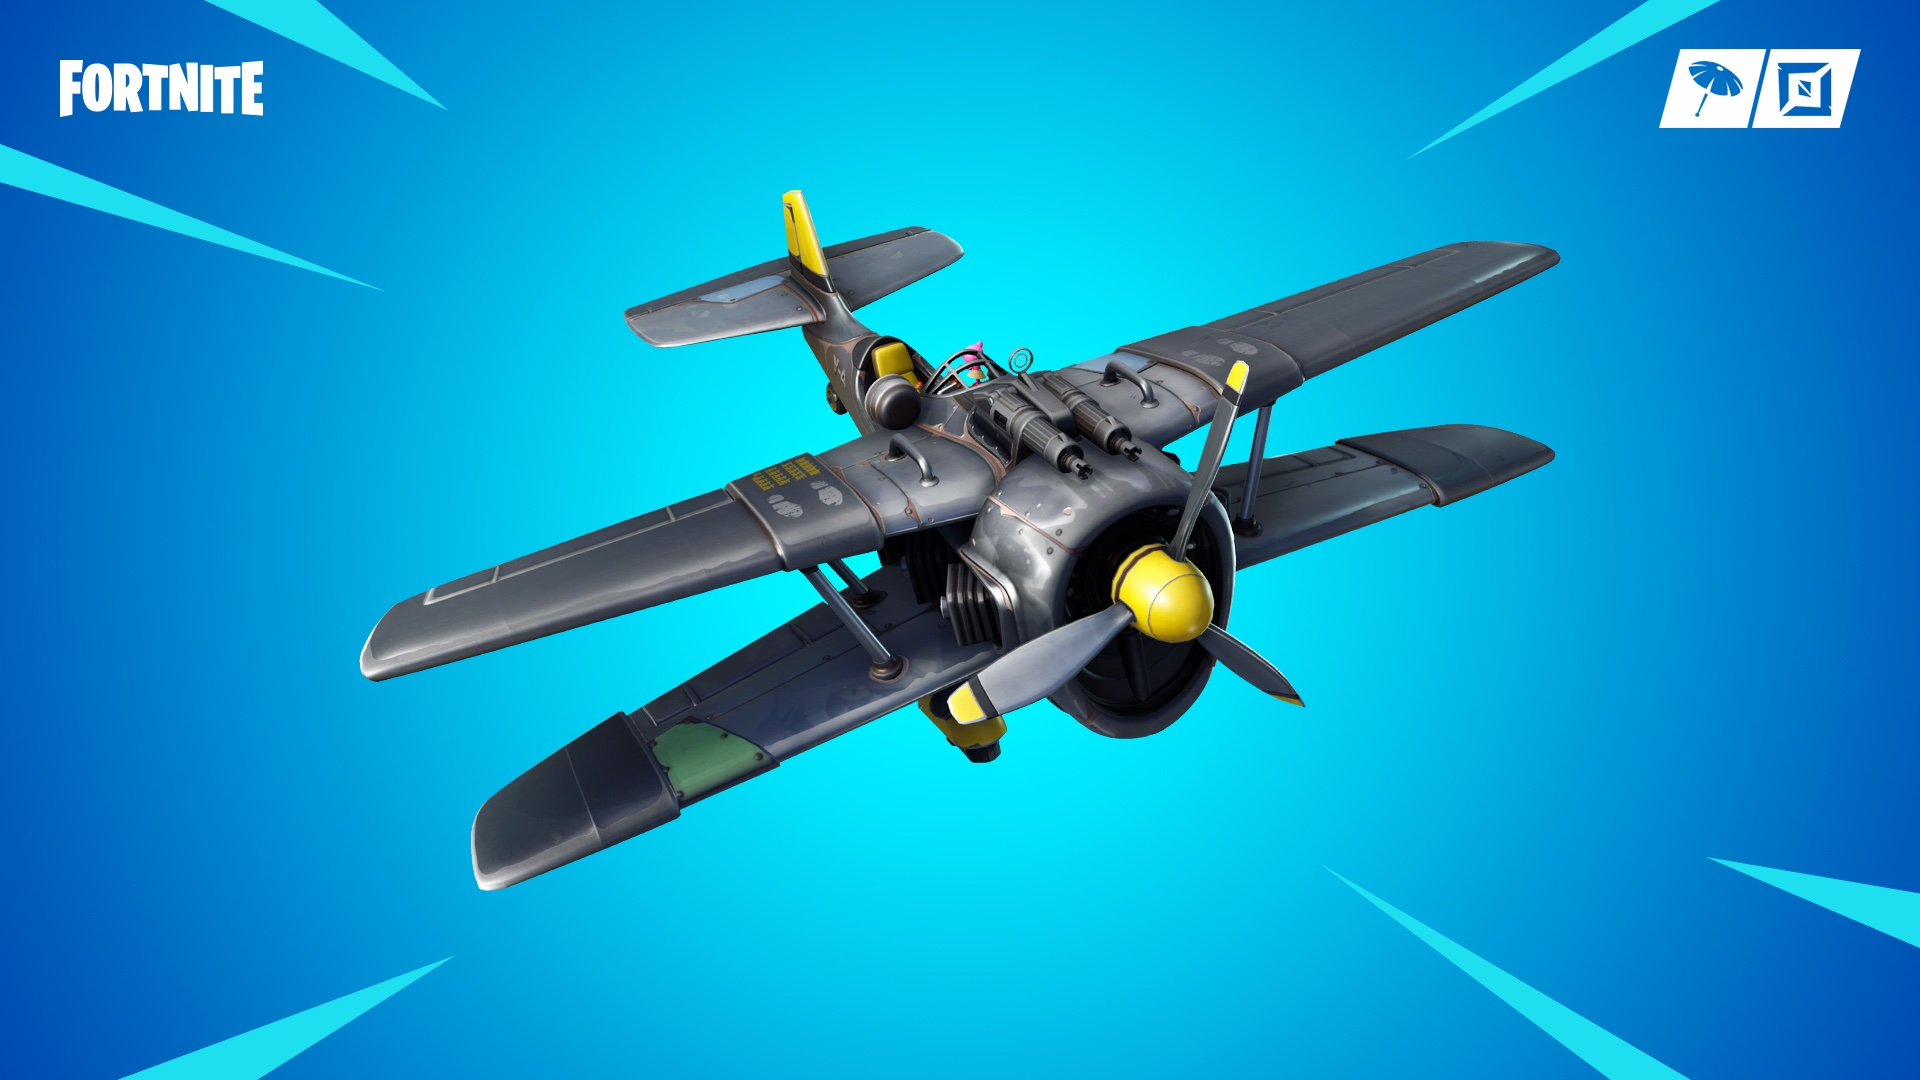 Fortnite Temporada 7 Ala Tormenta X-4